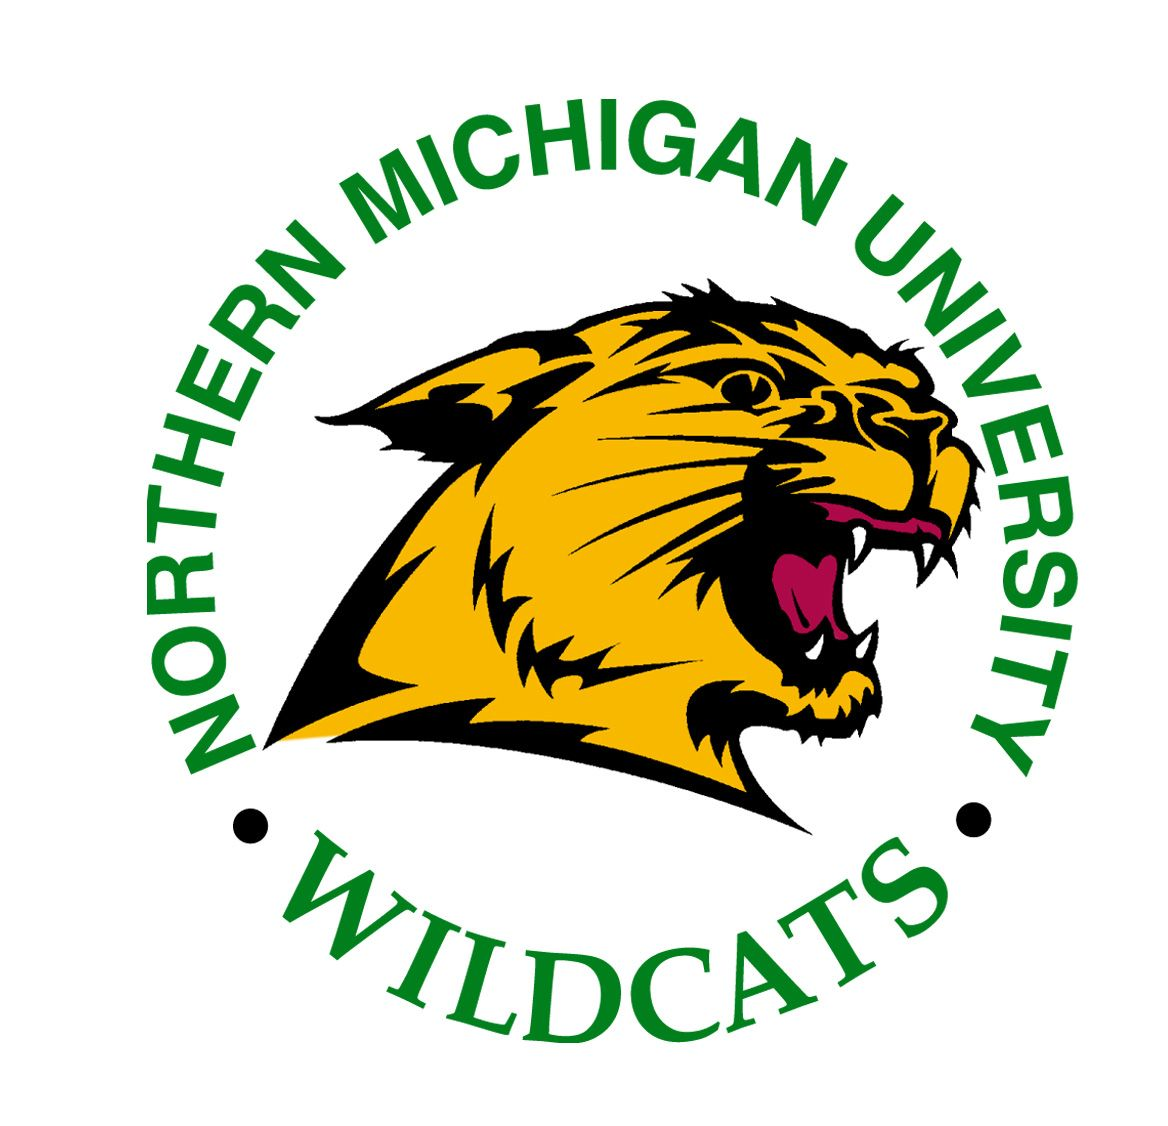 Northern michigan nmu wildcats soccer ball shaped area rug welcome